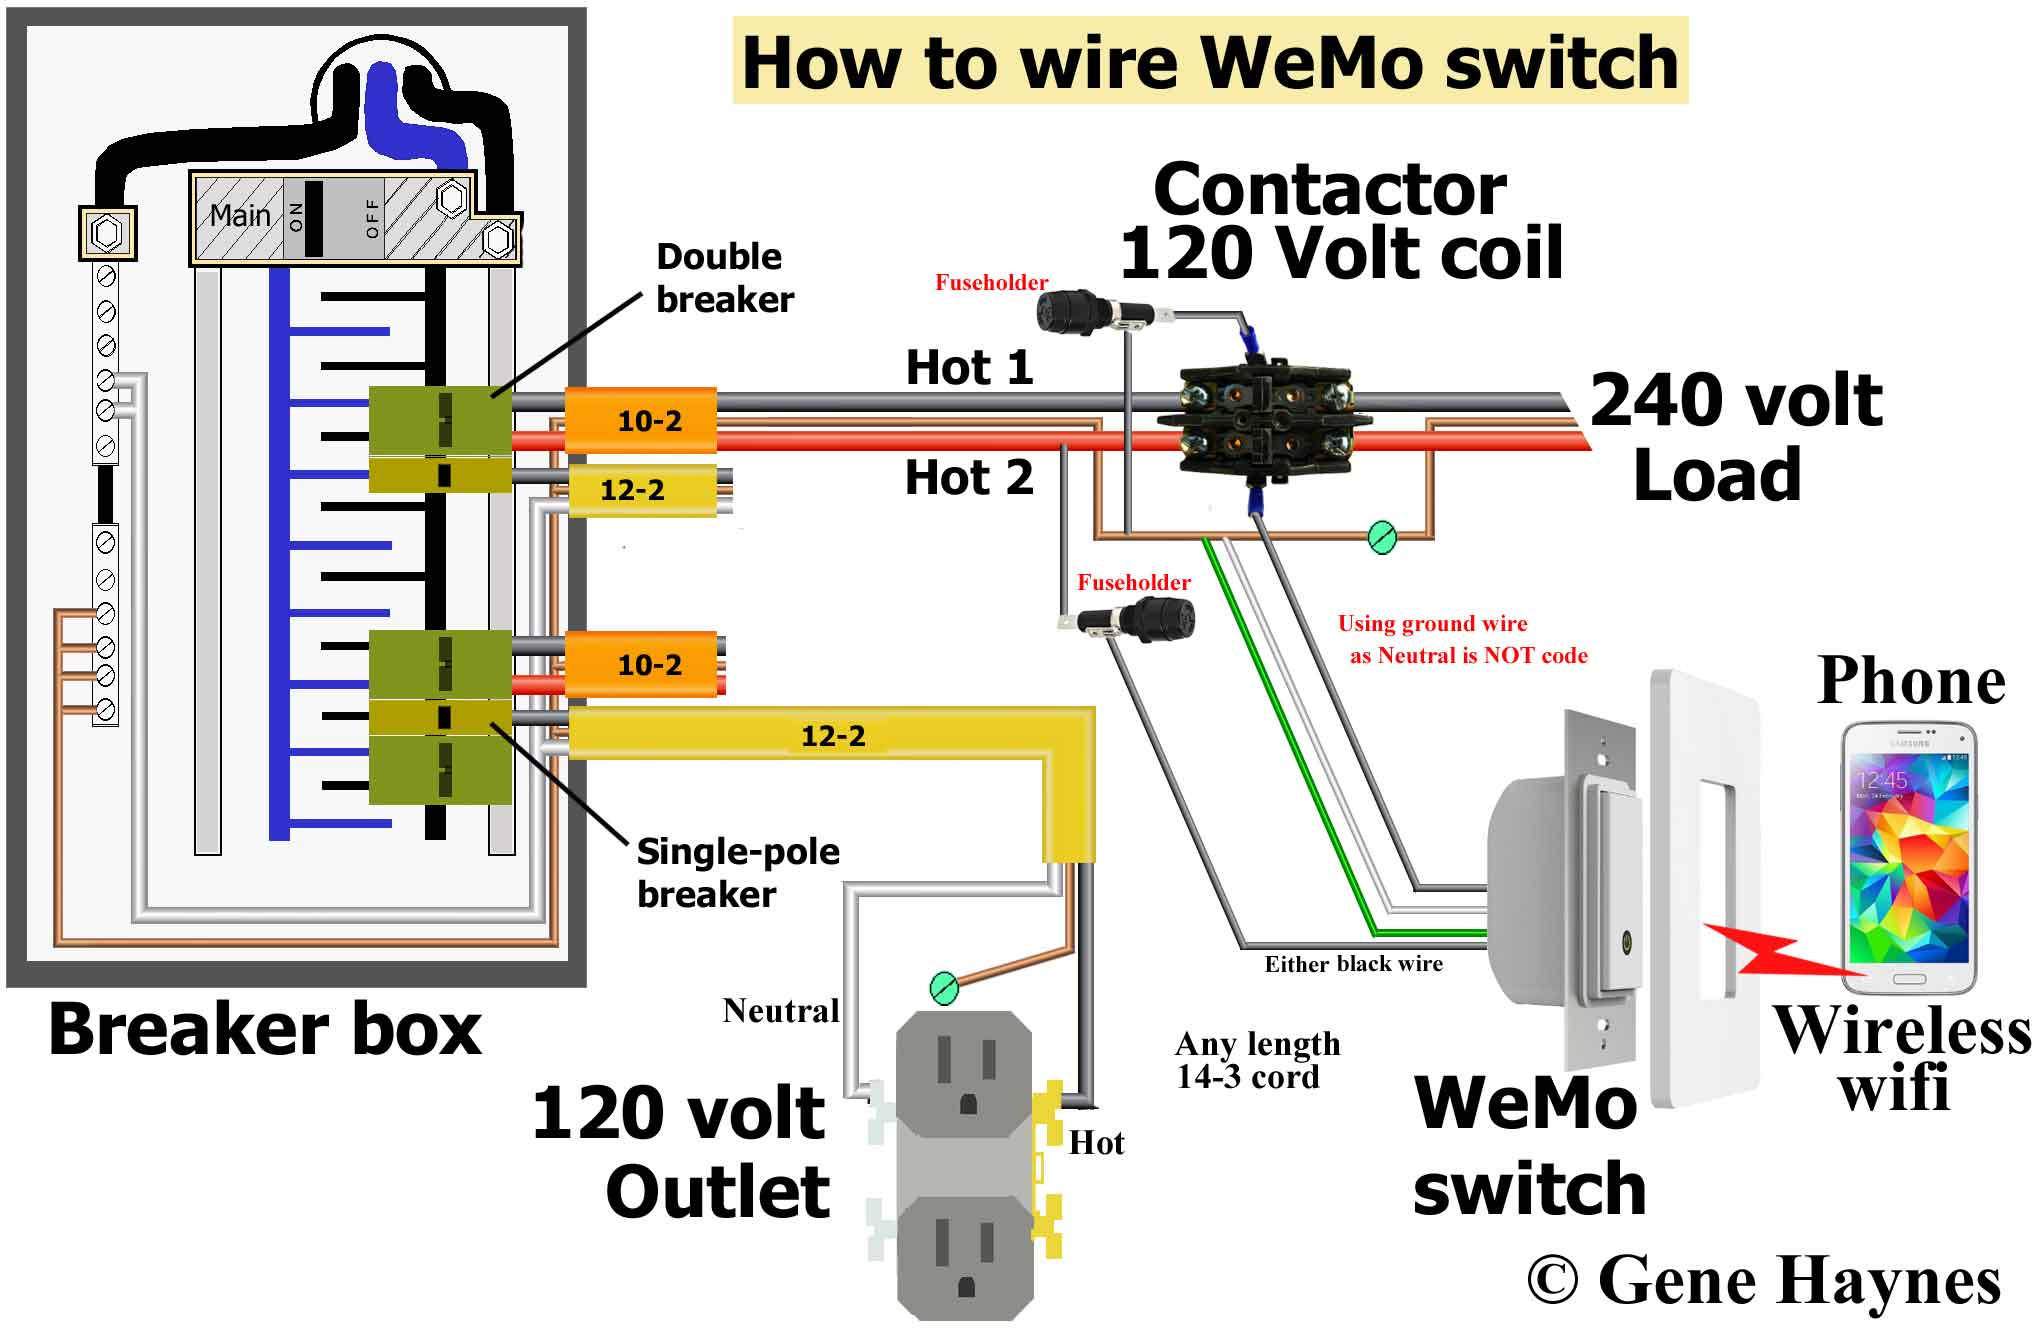 4 Wire 240 Volt Wiring Diagram Wiring Diagram